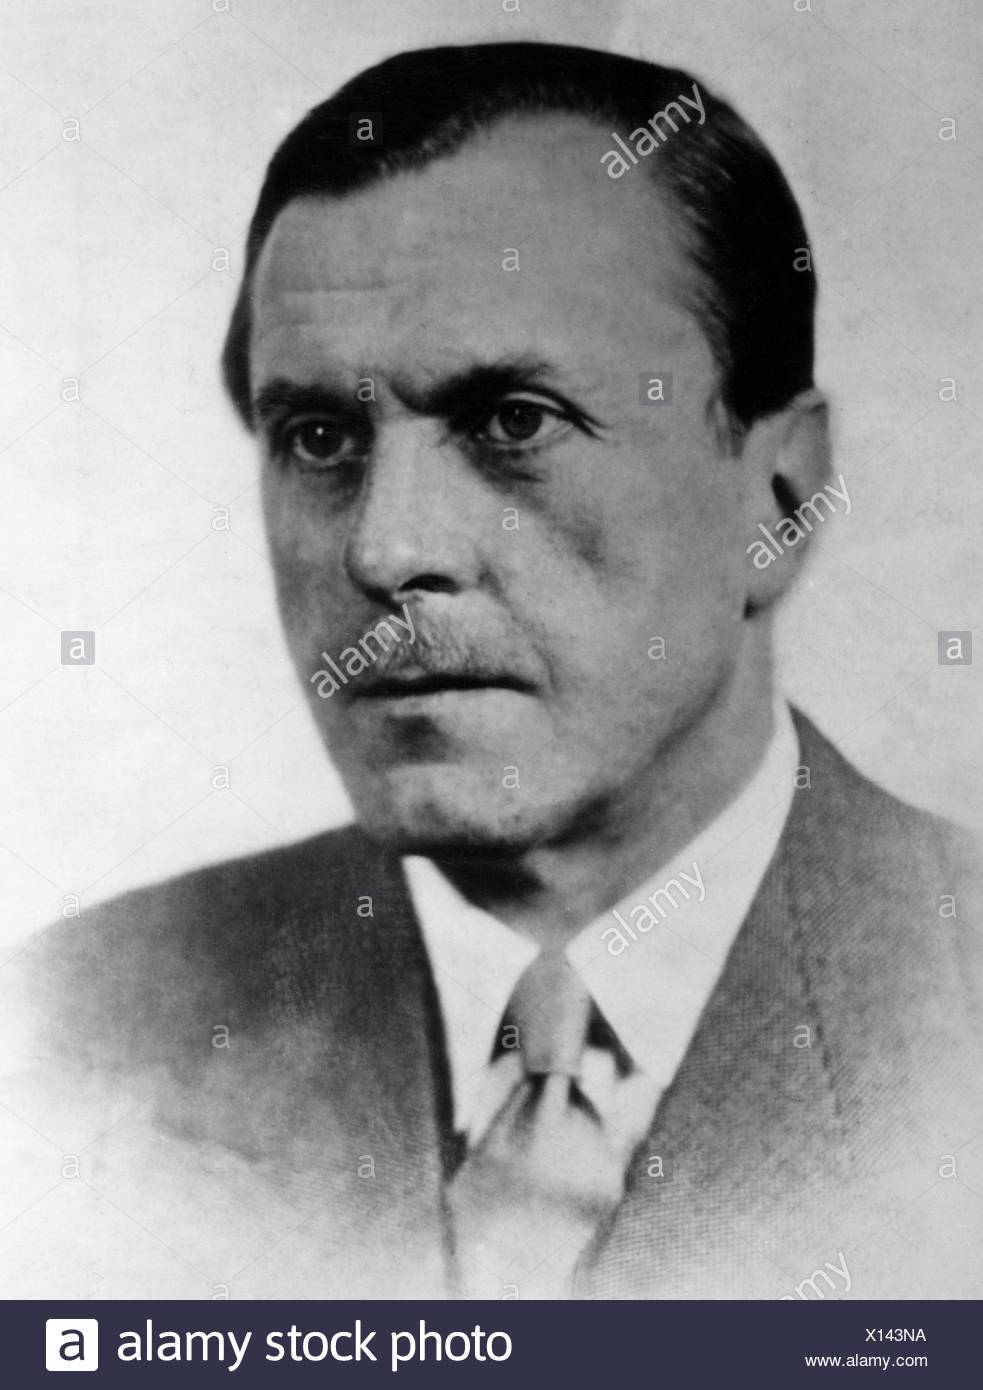 Brentano, Bernard von, 15.10.1901 - 29.12.1964, German writer, author, writers, authors, portrait, 1940s, , Additional-Rights-Clearances-NA - Stock Image